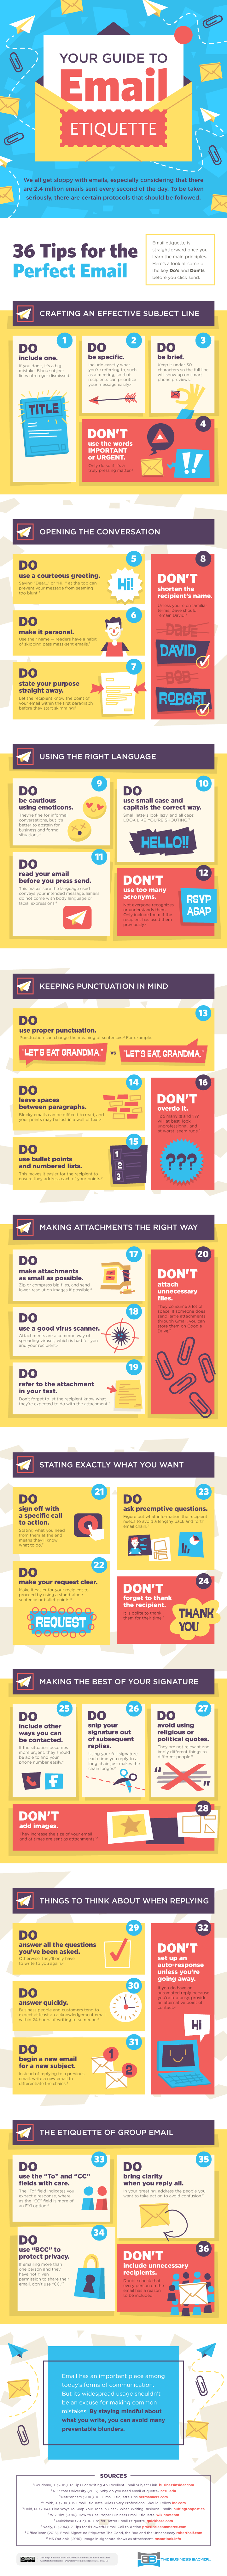 Your Guide to Email Etiquette #Infographic